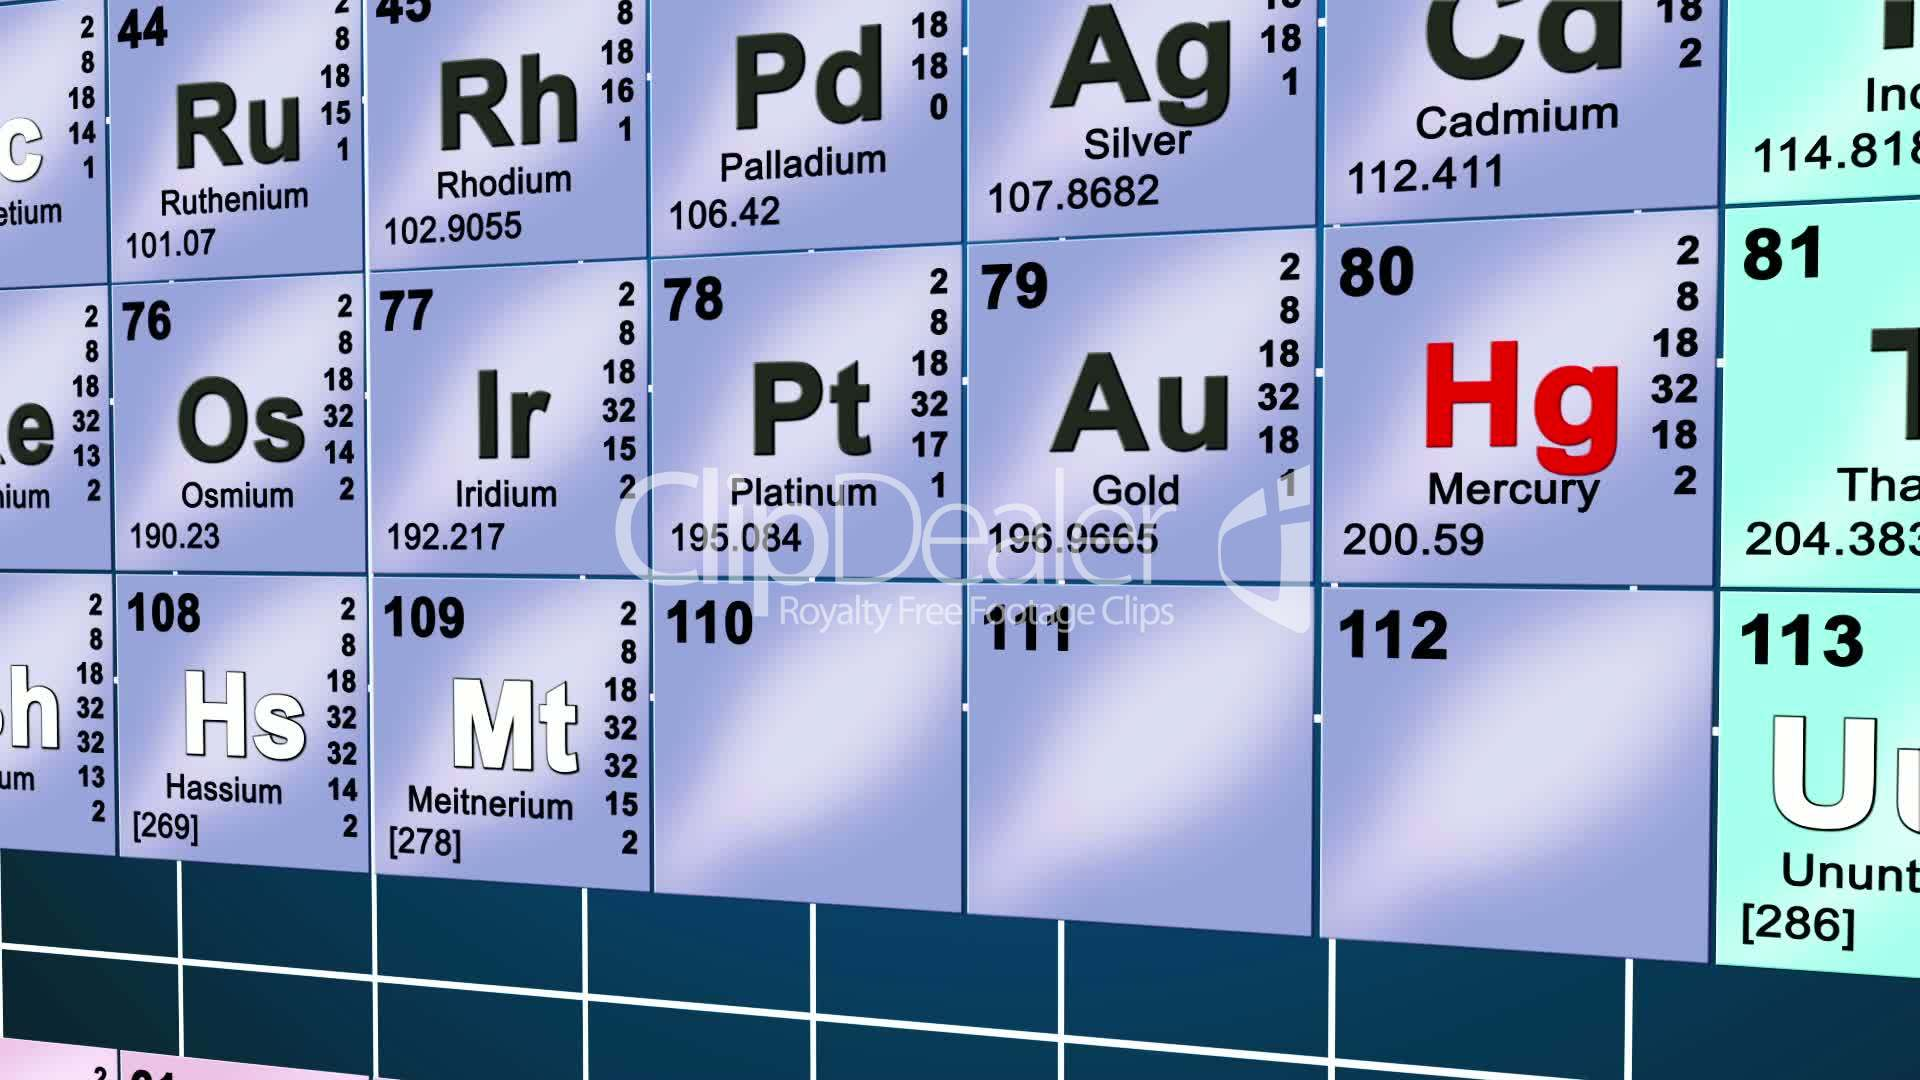 Periodic table of the elements on blue royalty free video and symbol table technology titanium ununoctium uranium weight xenon zirconium royalty free videos gamestrikefo Images